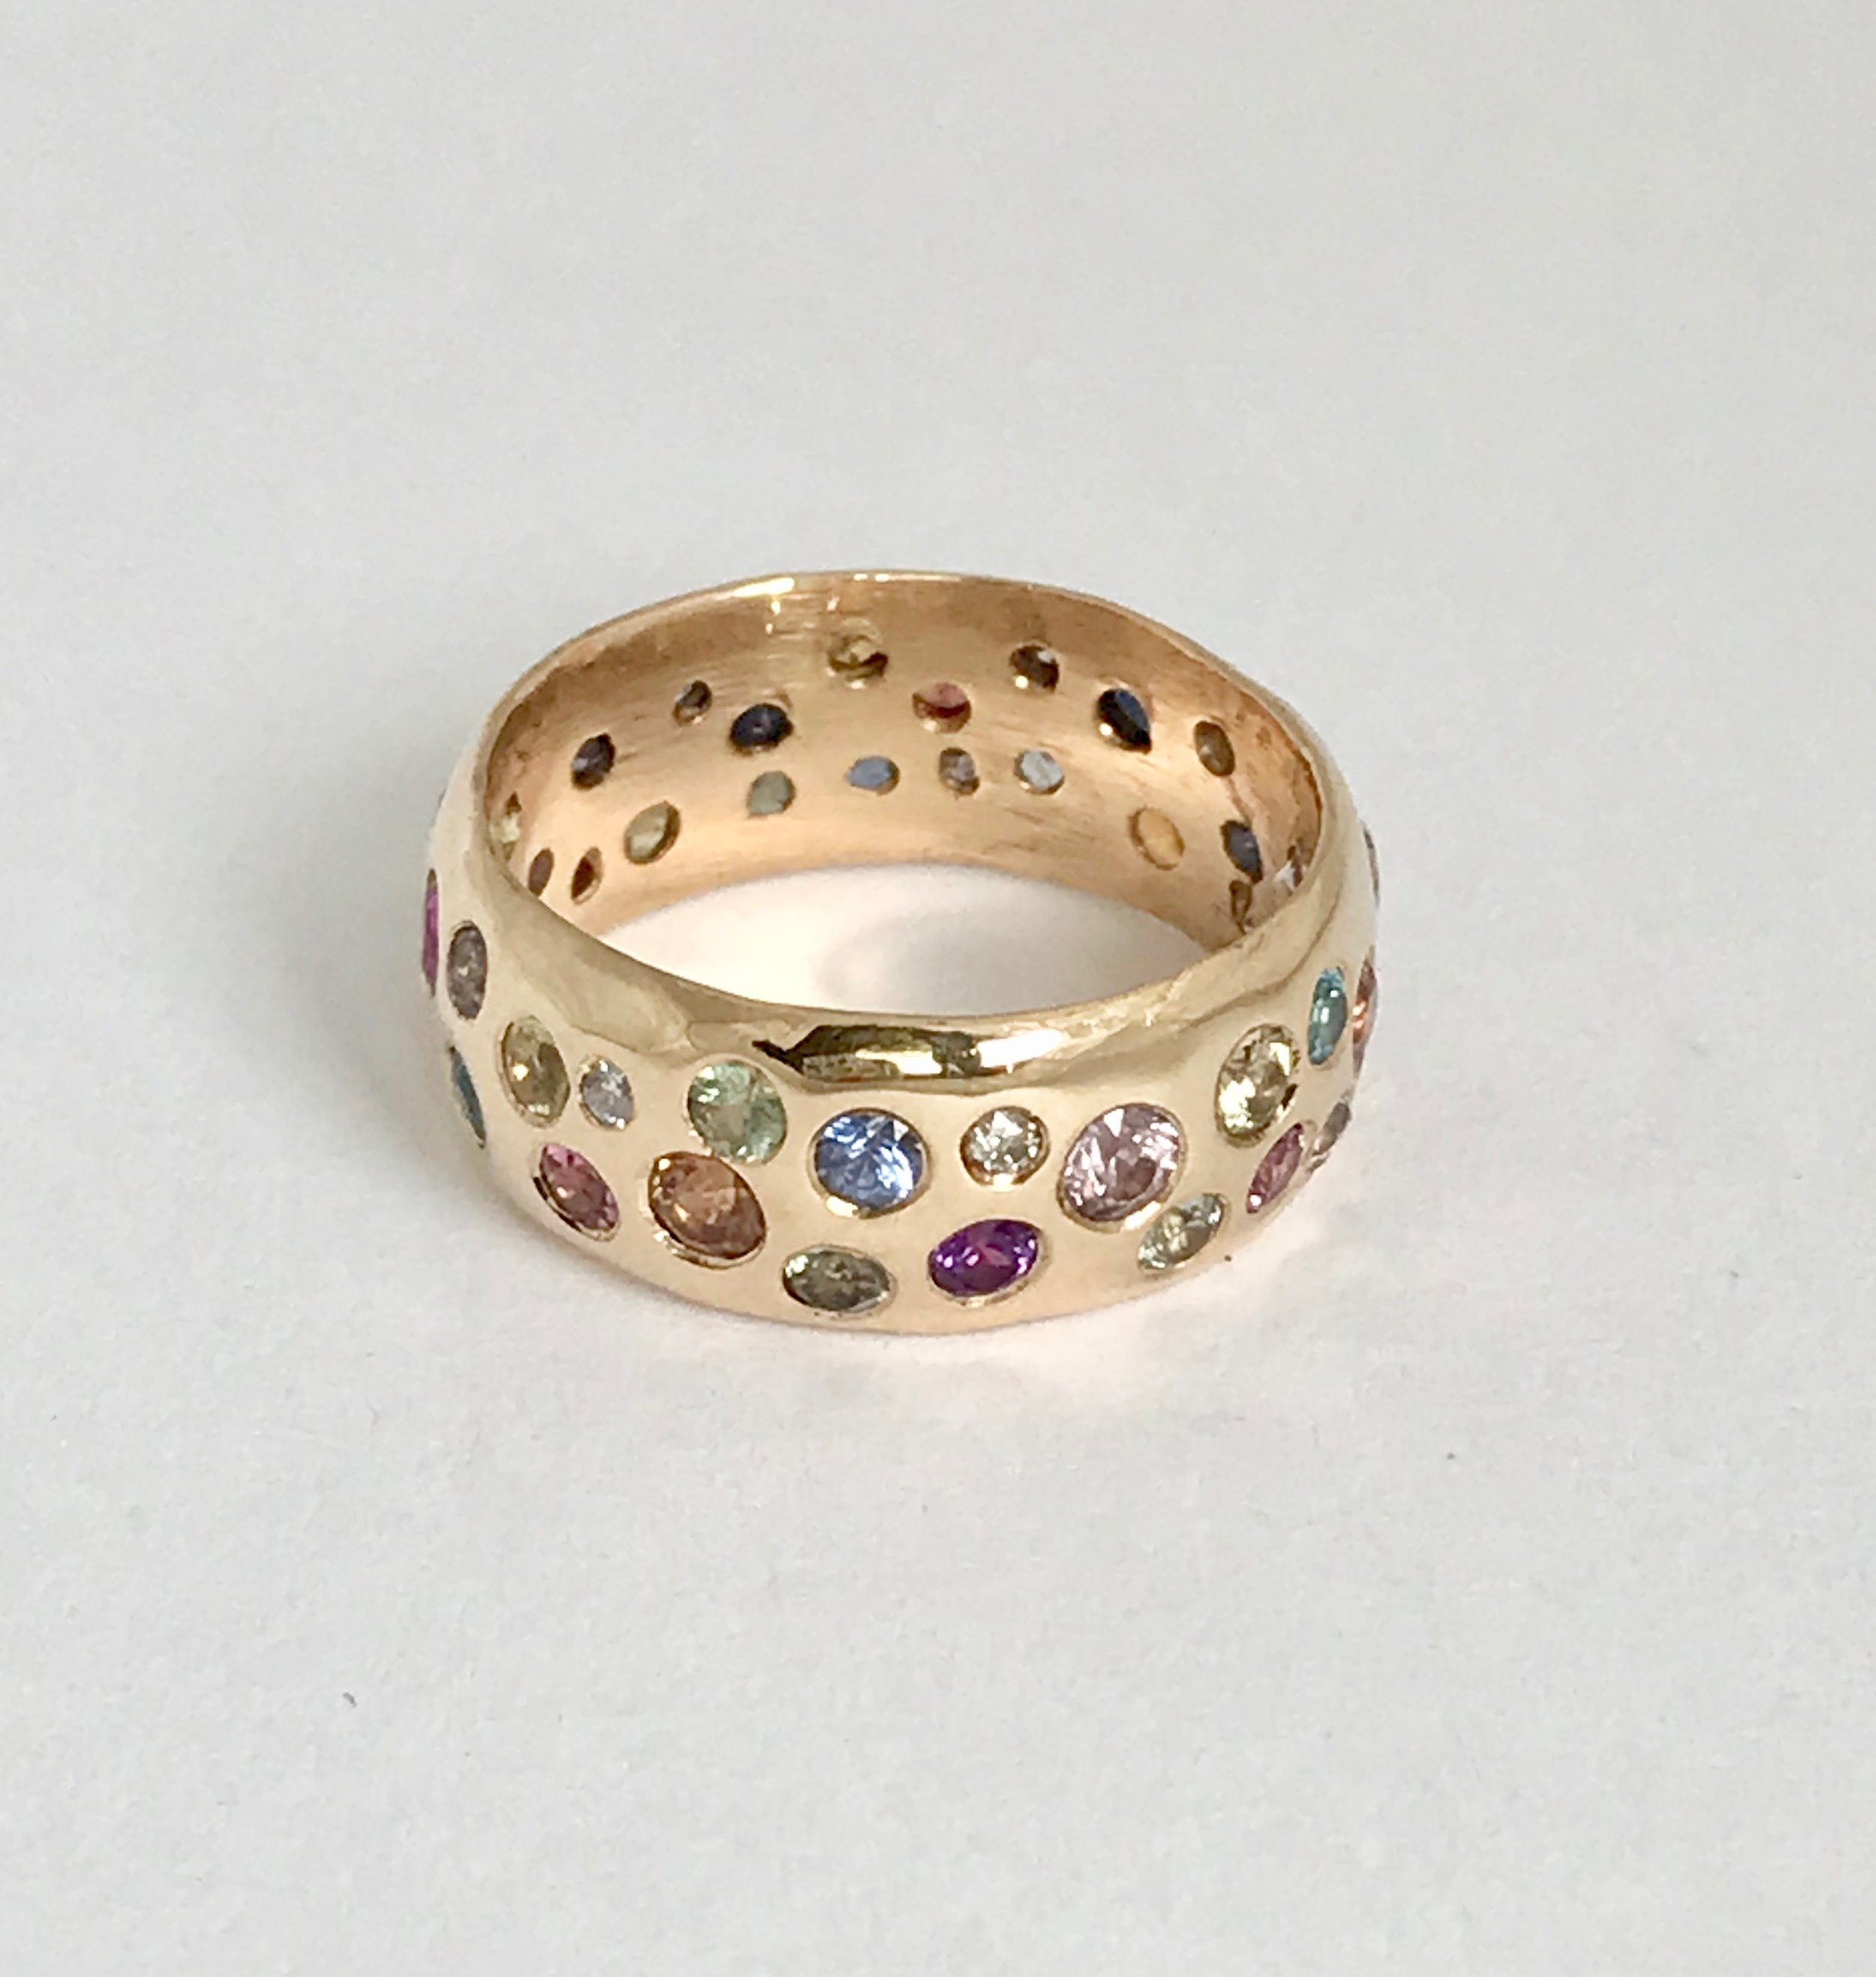 Custom Order for private client. Hand carved 14k gold ring with 43 sapphires and diamonds.